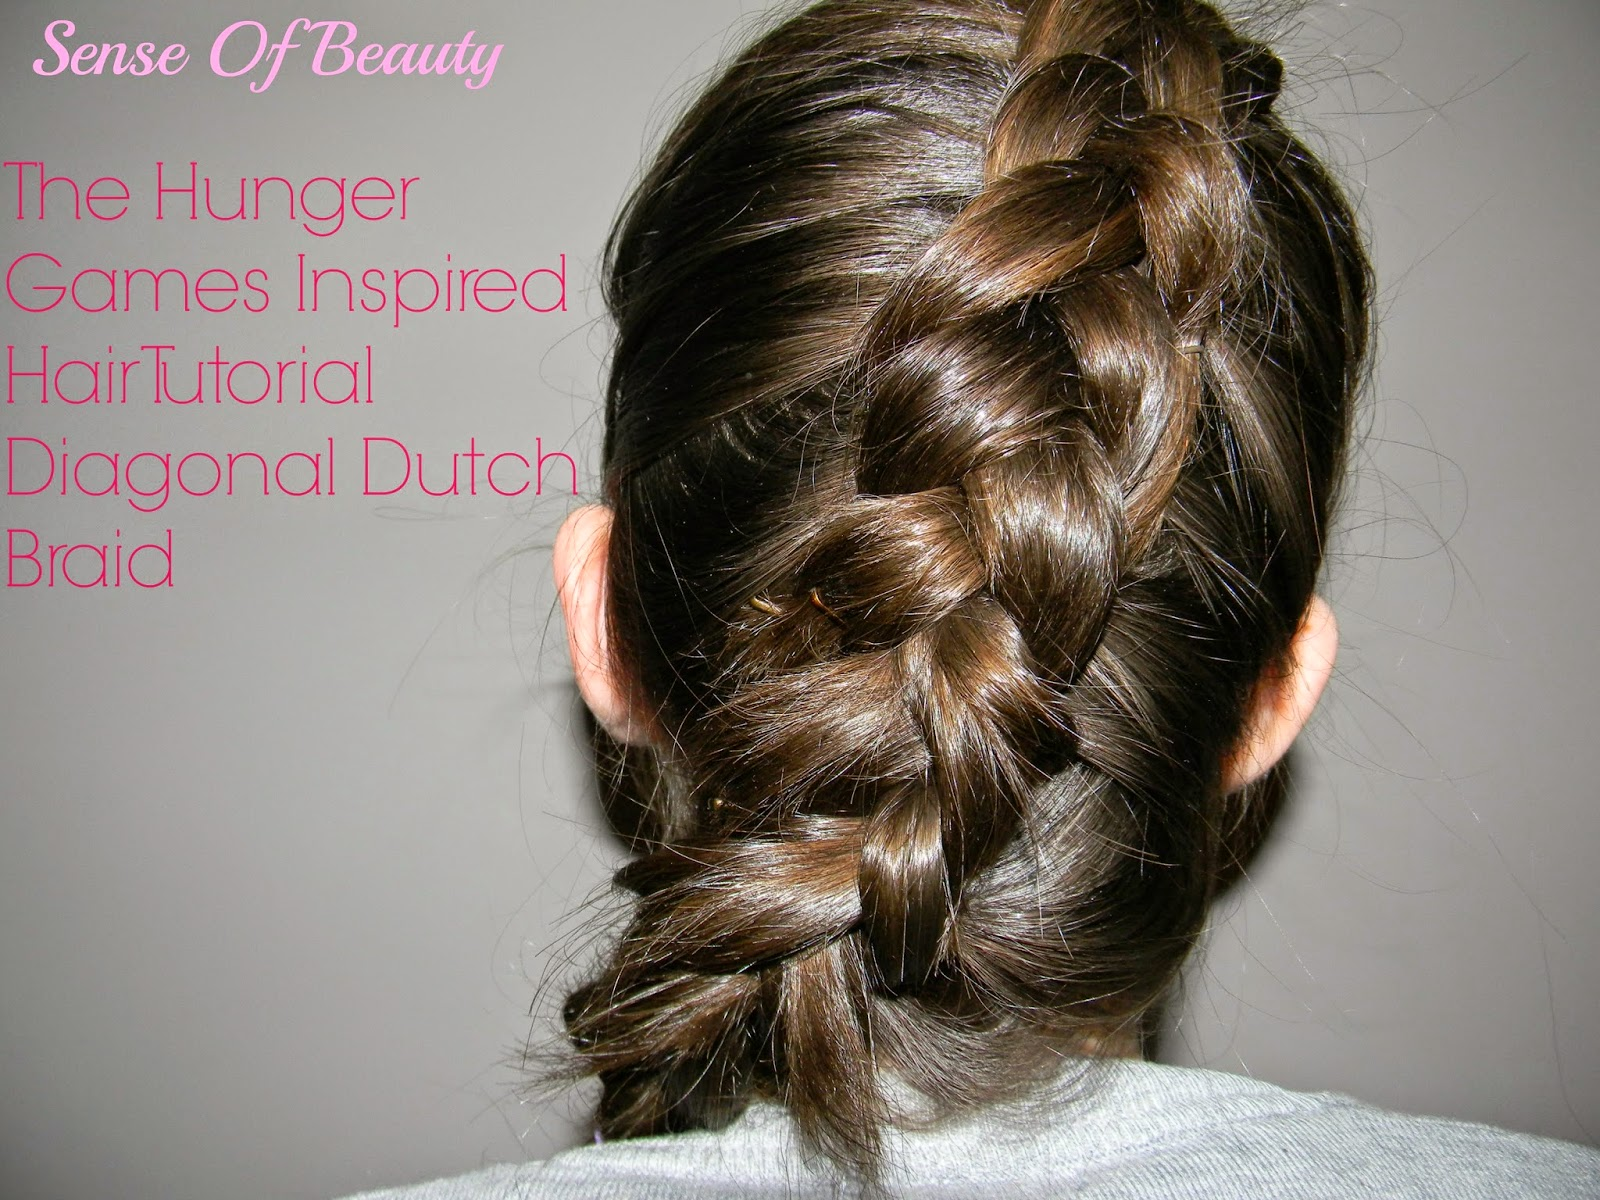 Hairstyles With Dutch Braids: Sense Of Beauty: The Hunger Games Inspired Hairstyle